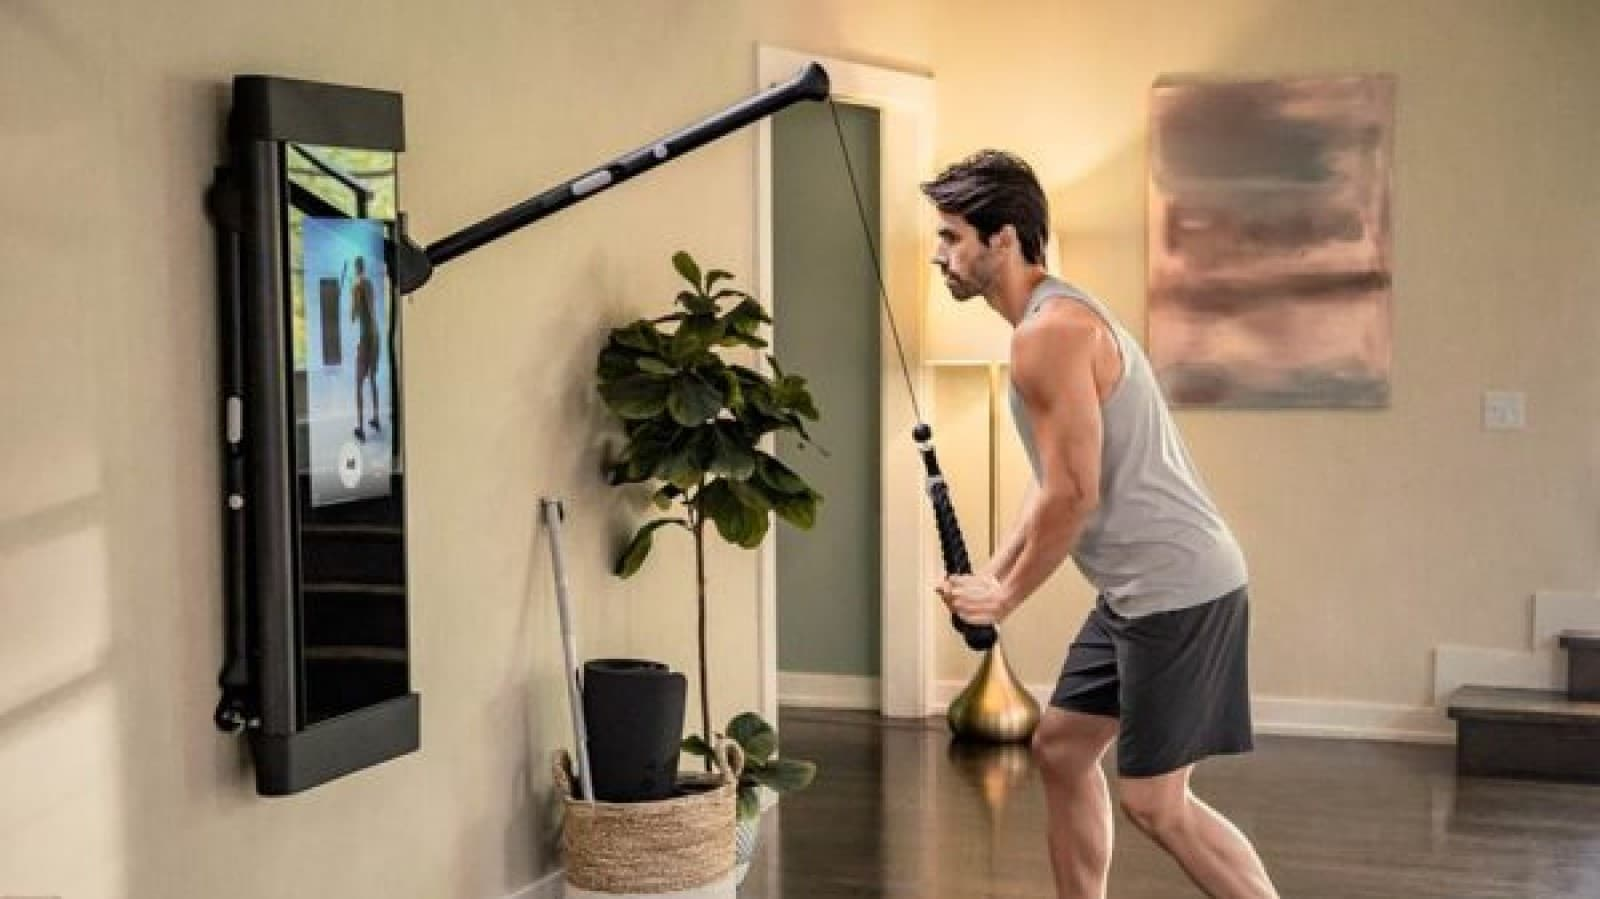 tonal weight trainer being used by a man